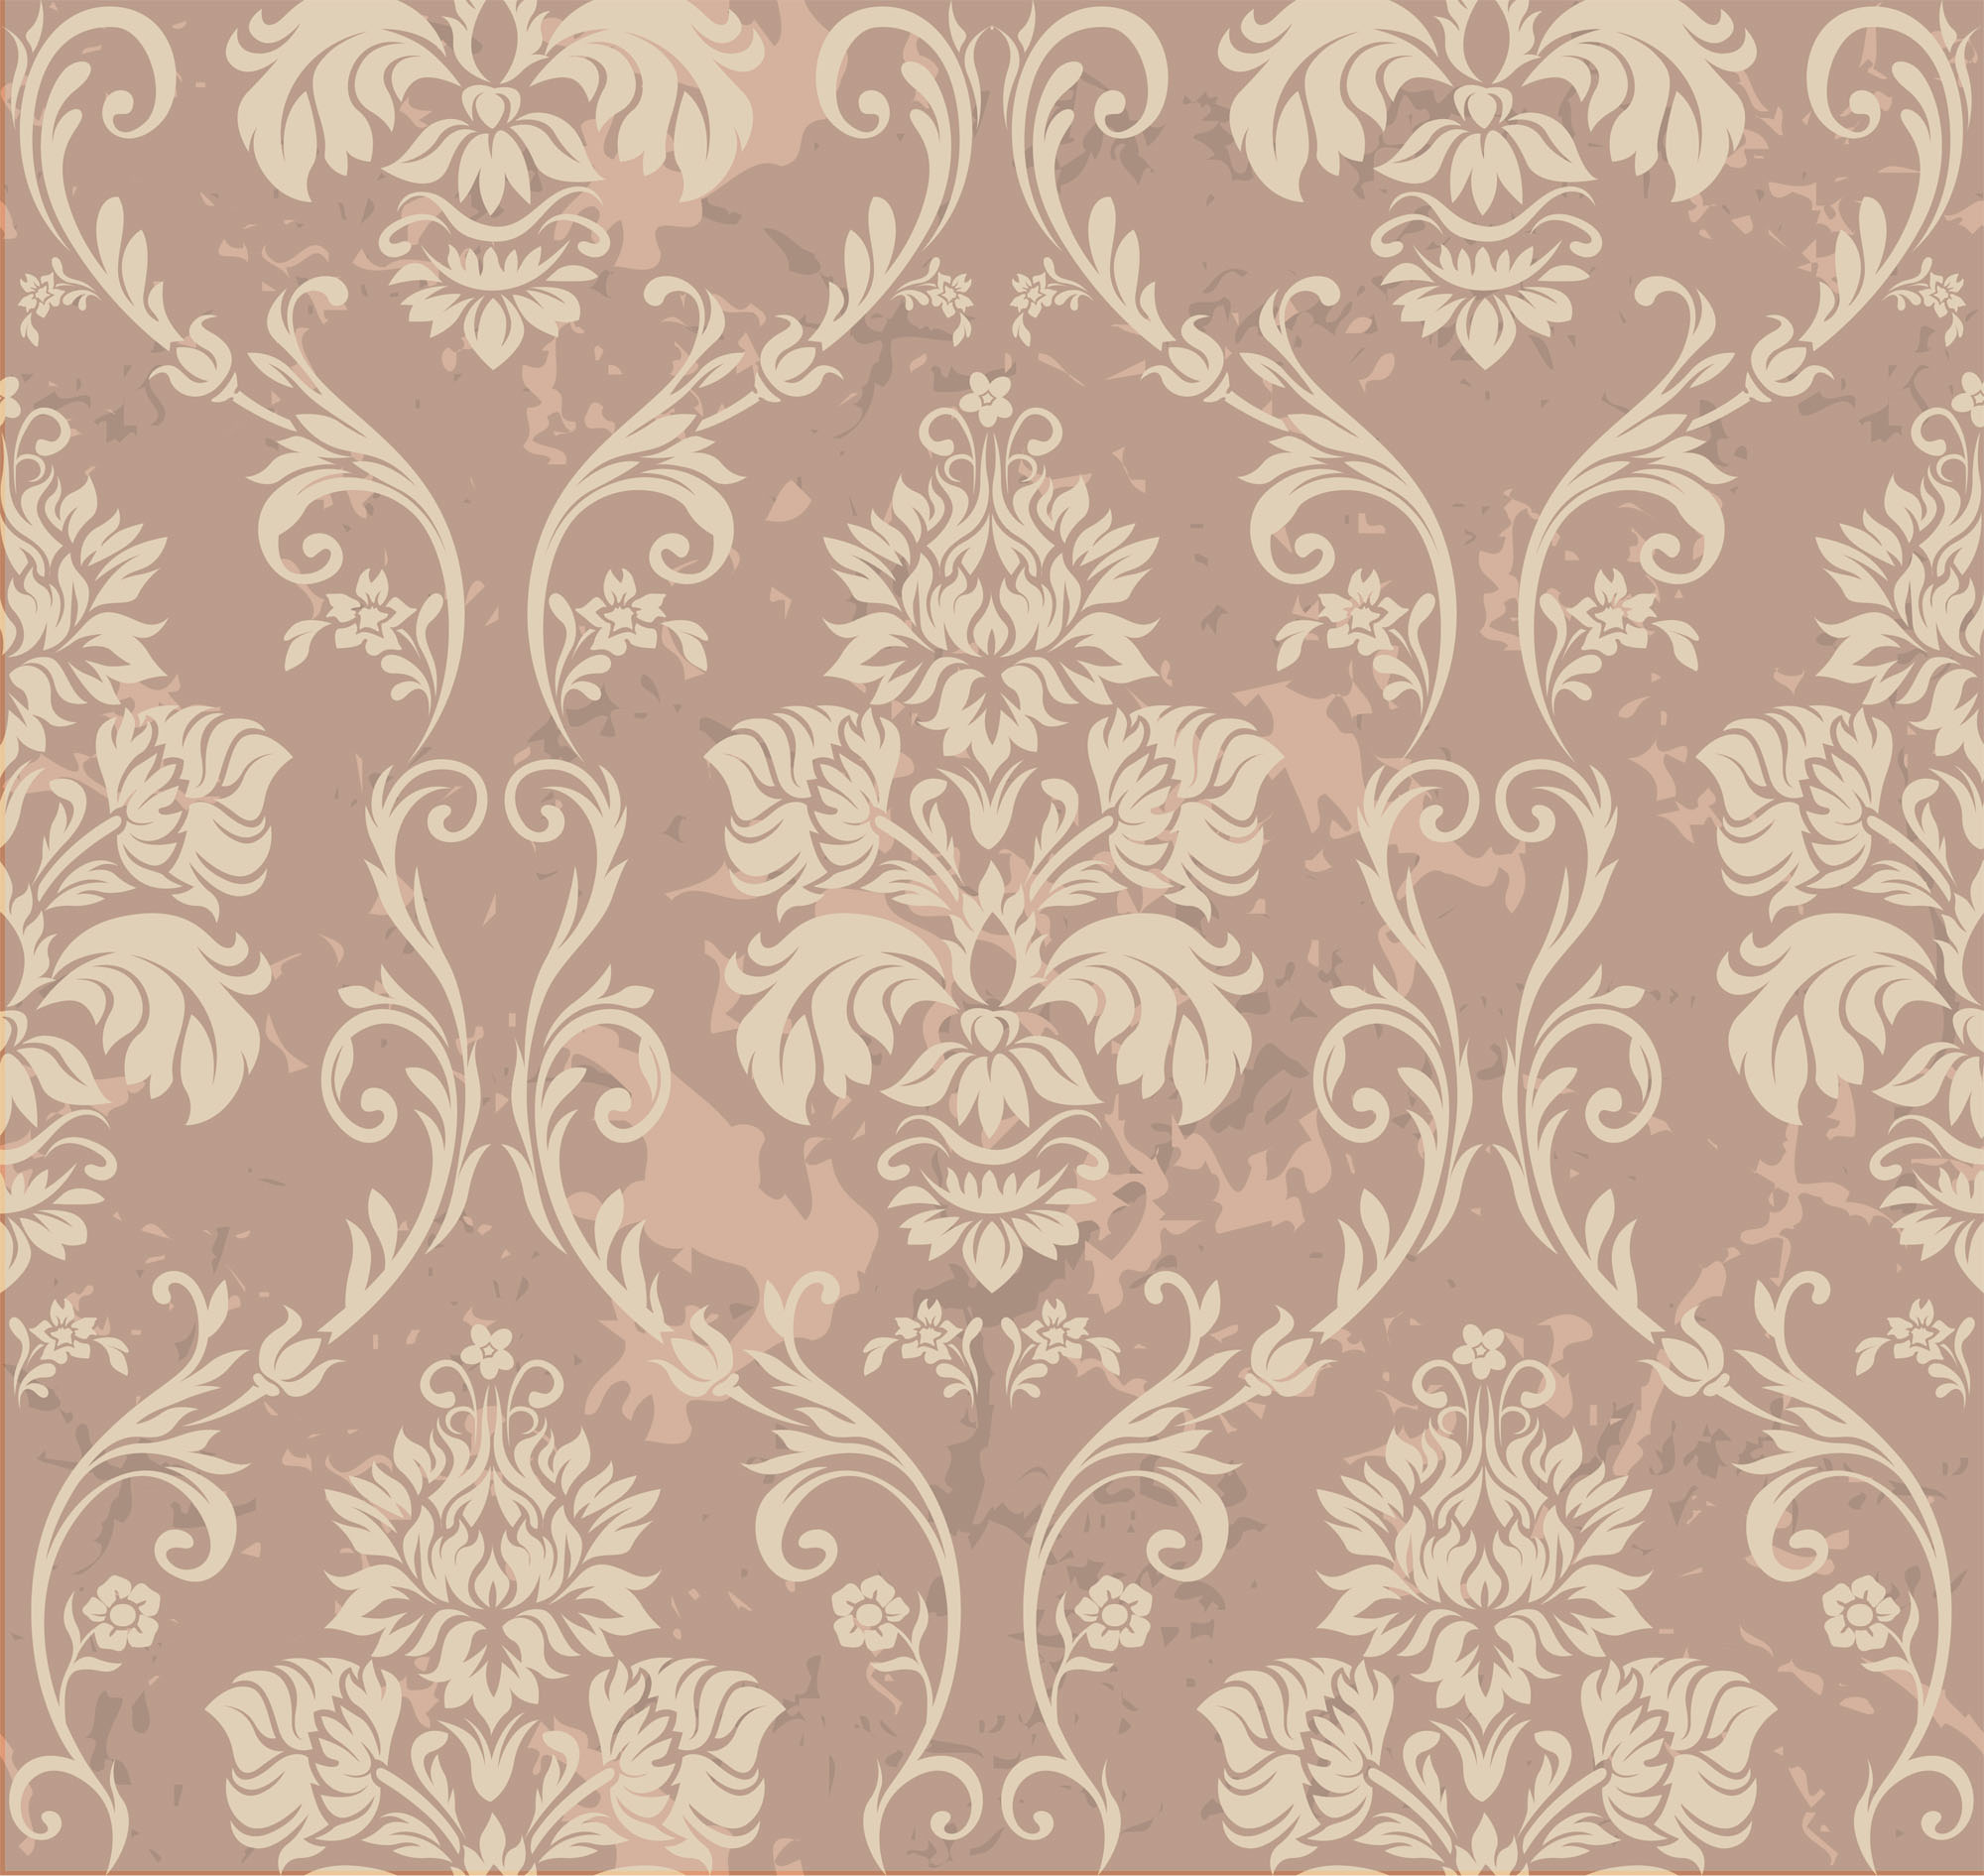 httpvector magzcompatternvictorian wallpaper patterns item 1 2000x1891